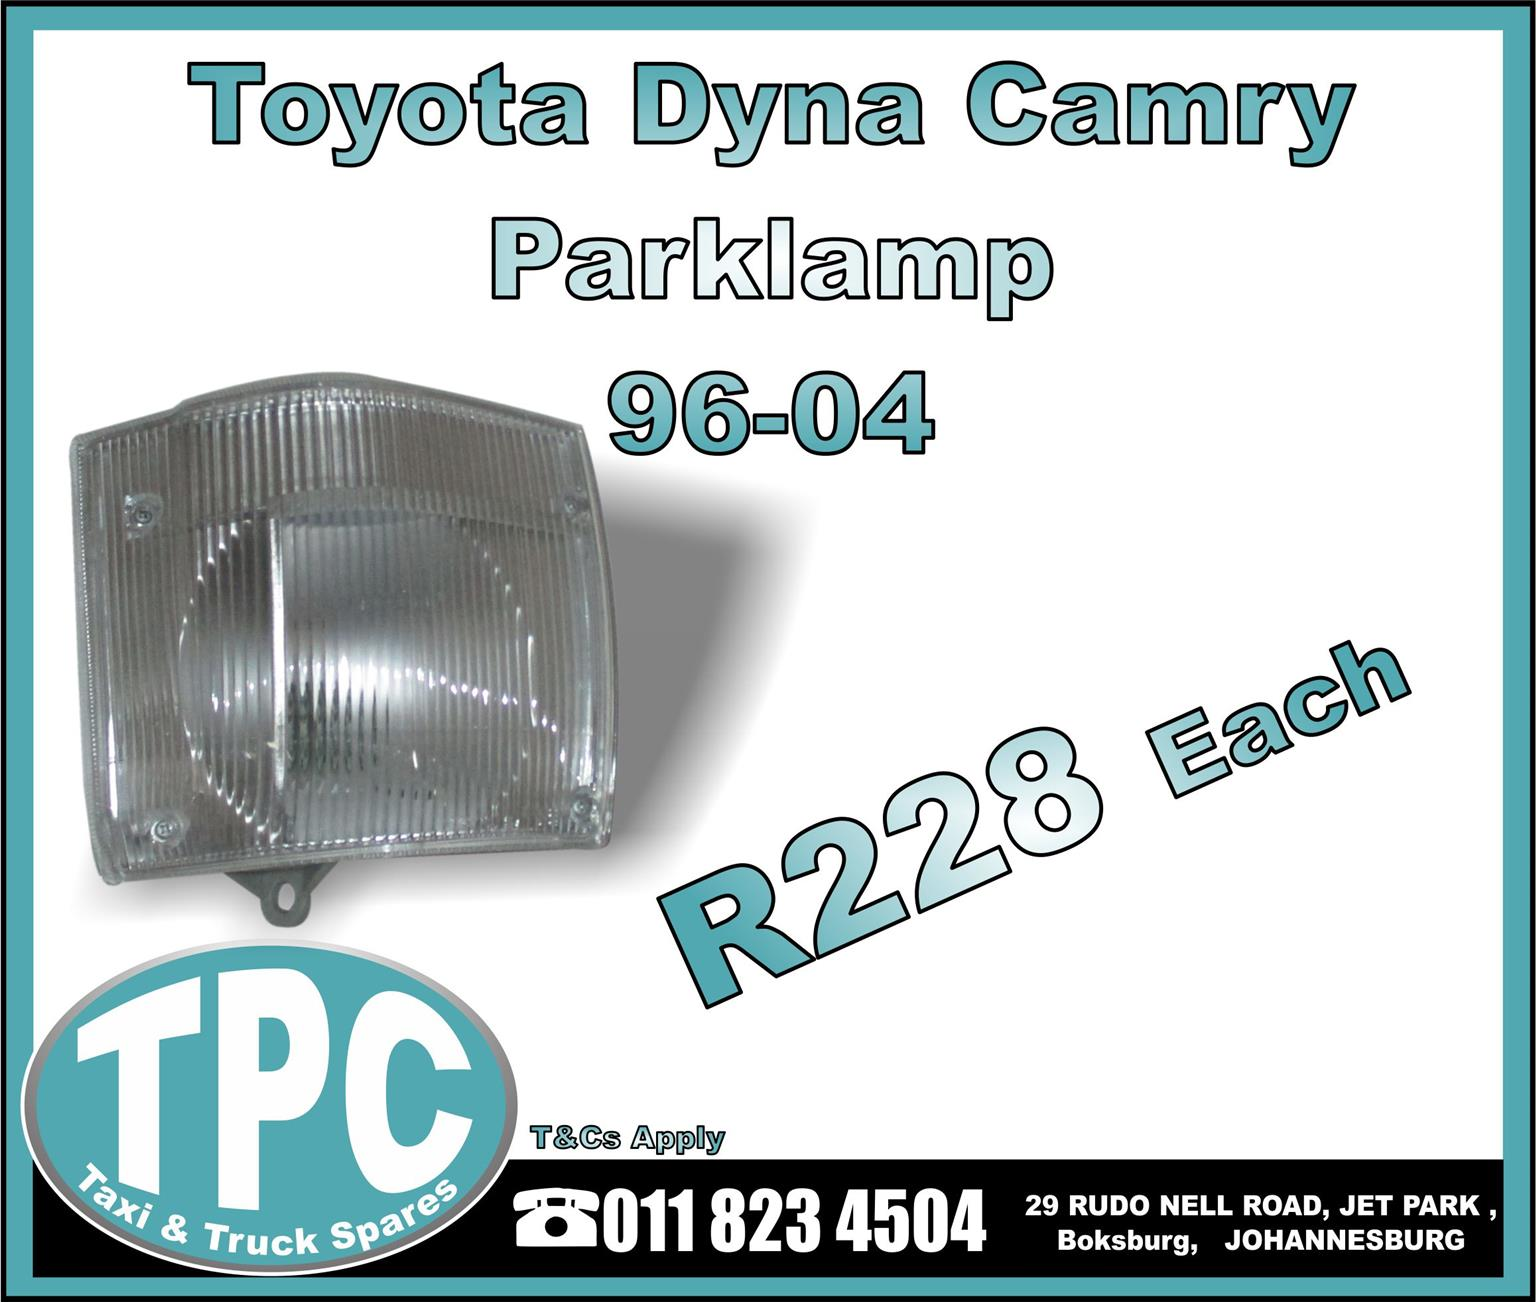 Toyota Dyna Camry Parklamp - 96-04 - New Replacement Truck Body Parts- TPC.